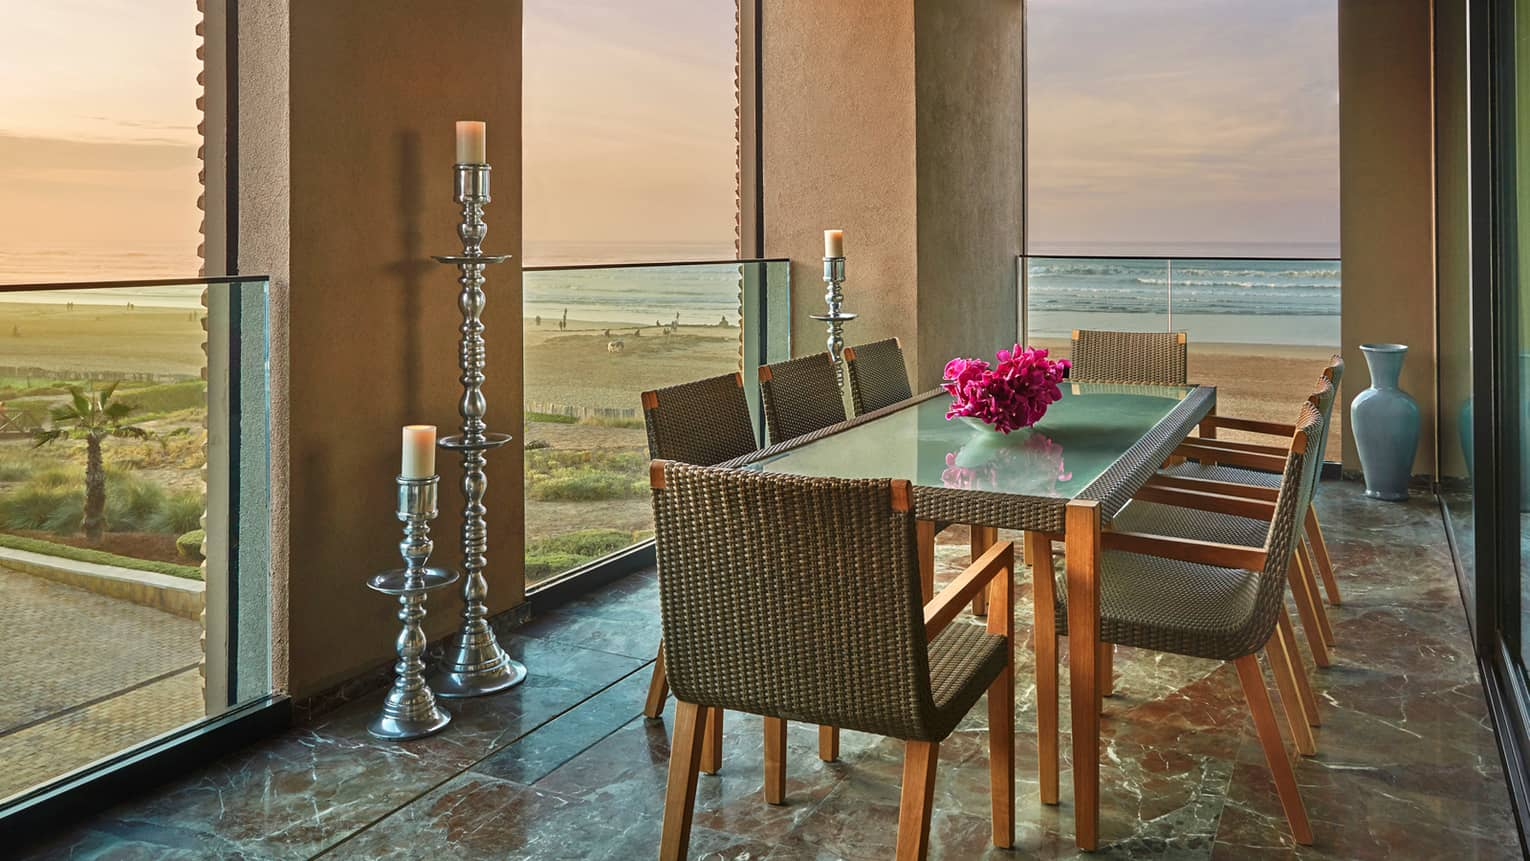 Balcony dining table with wicker chairs, fresh pink flowers, tall silver pillar candles, ocean views